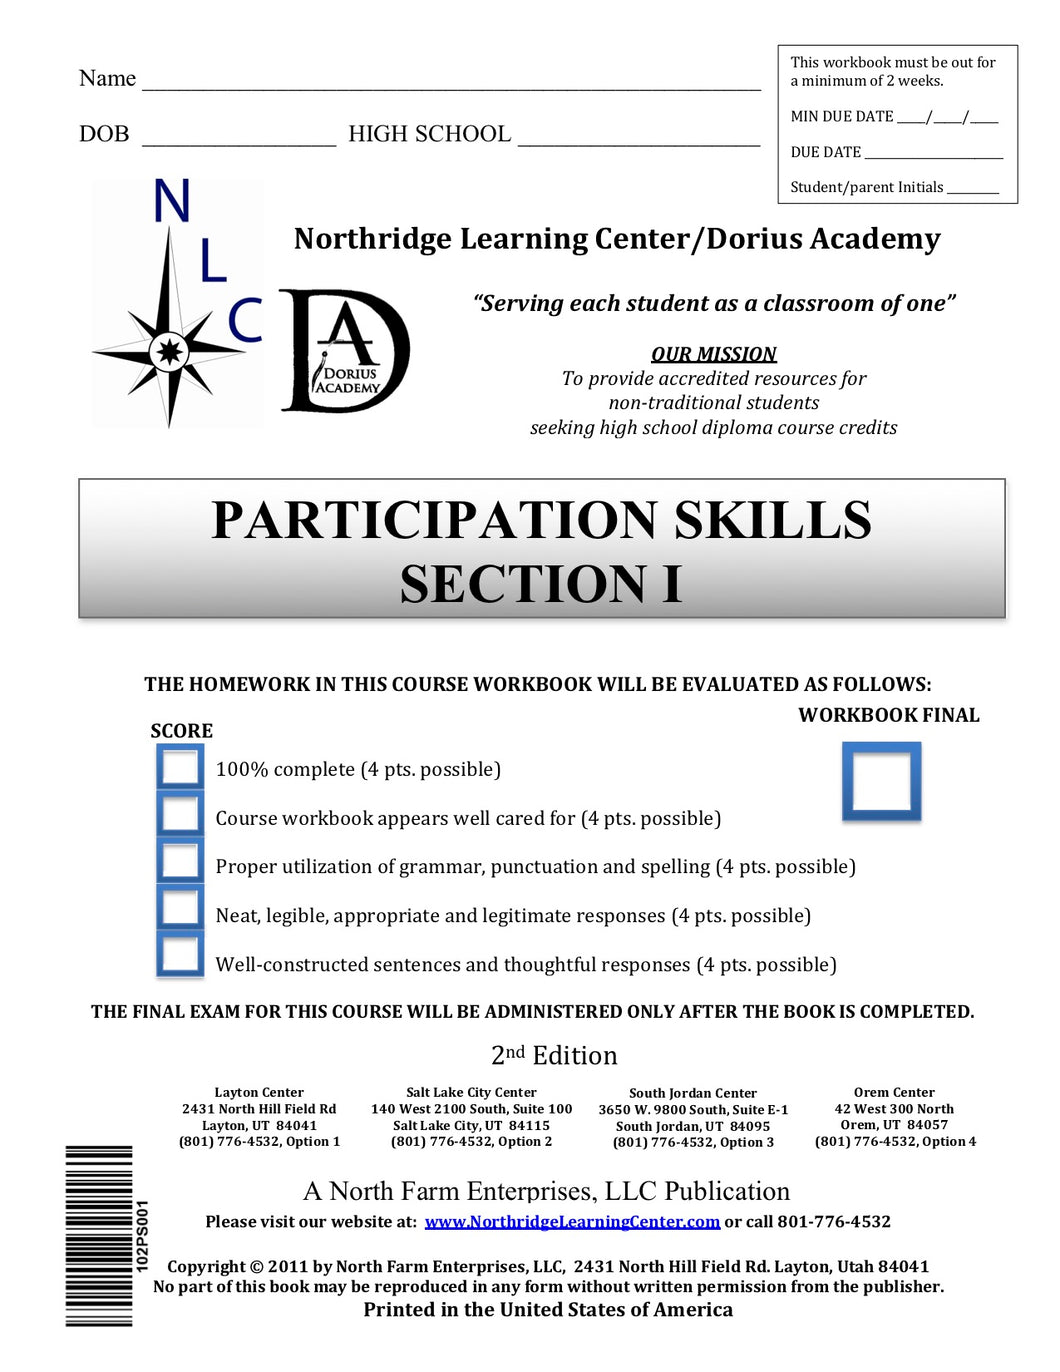 Participation Skills, Section I